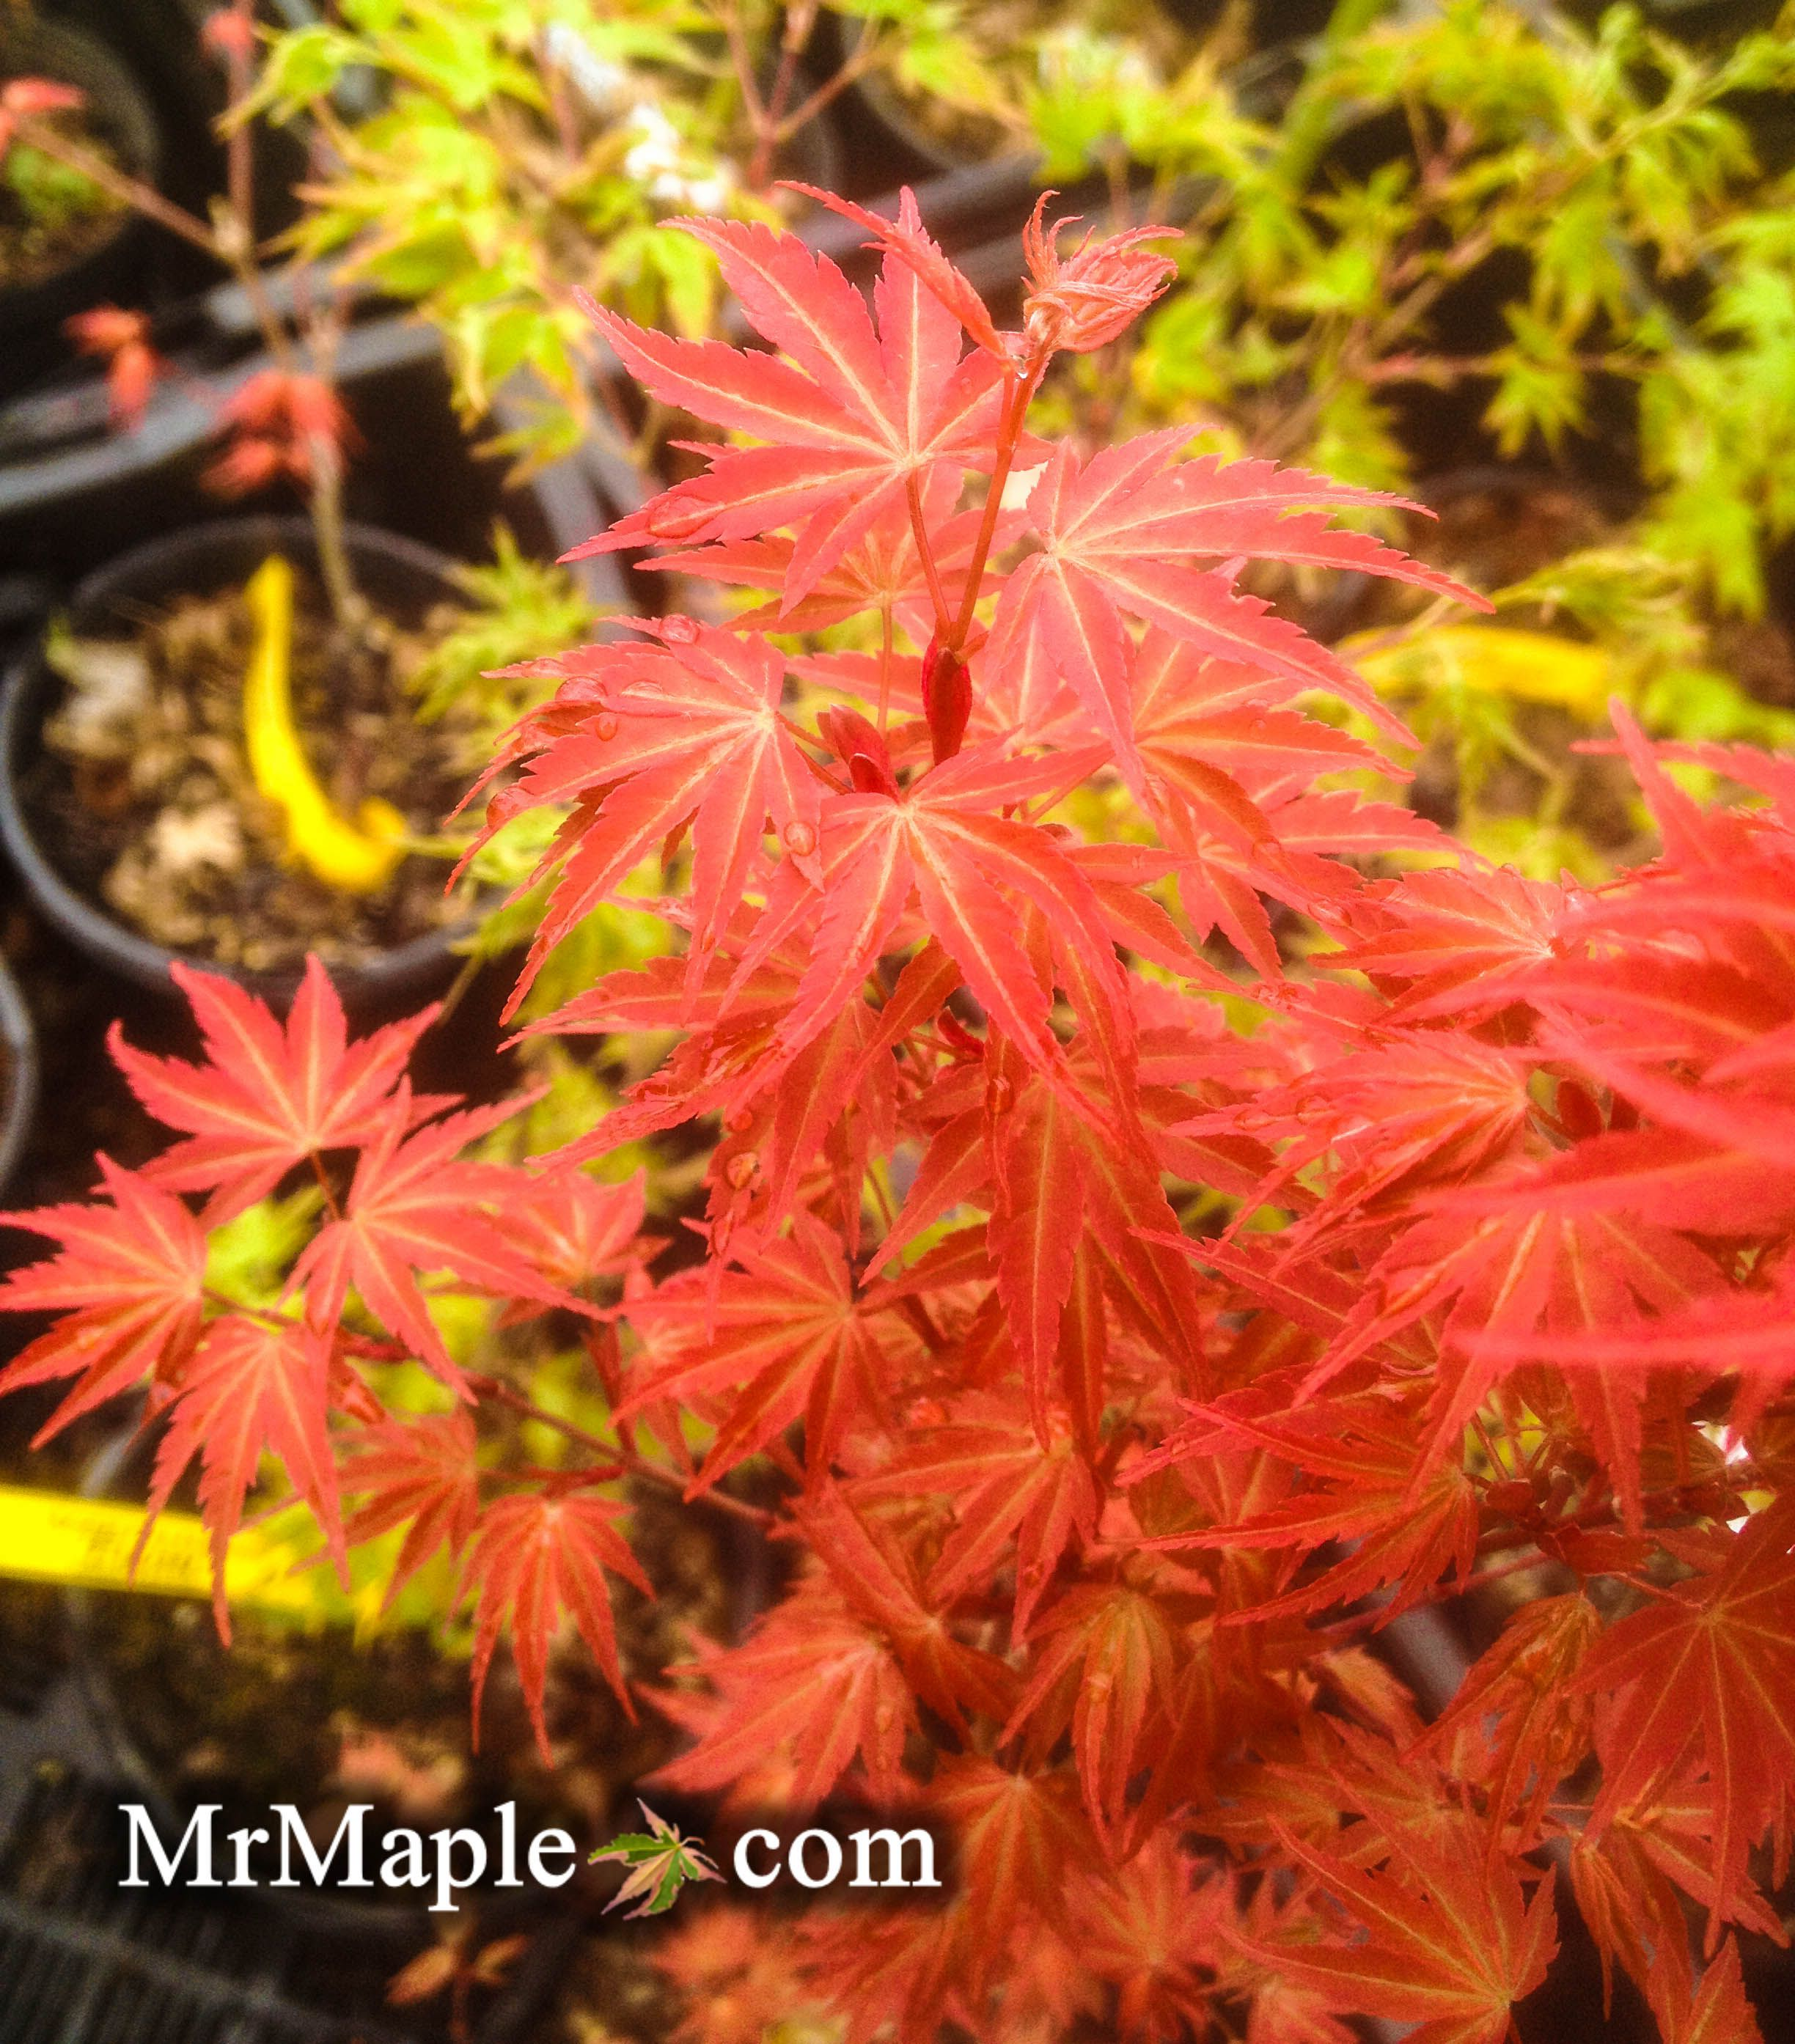 How to care for a fern leaf japanese maple - Sandra Is A Gorgeous Little Pink Dwarf Japanese Maple This Small Tree Is Excellent For